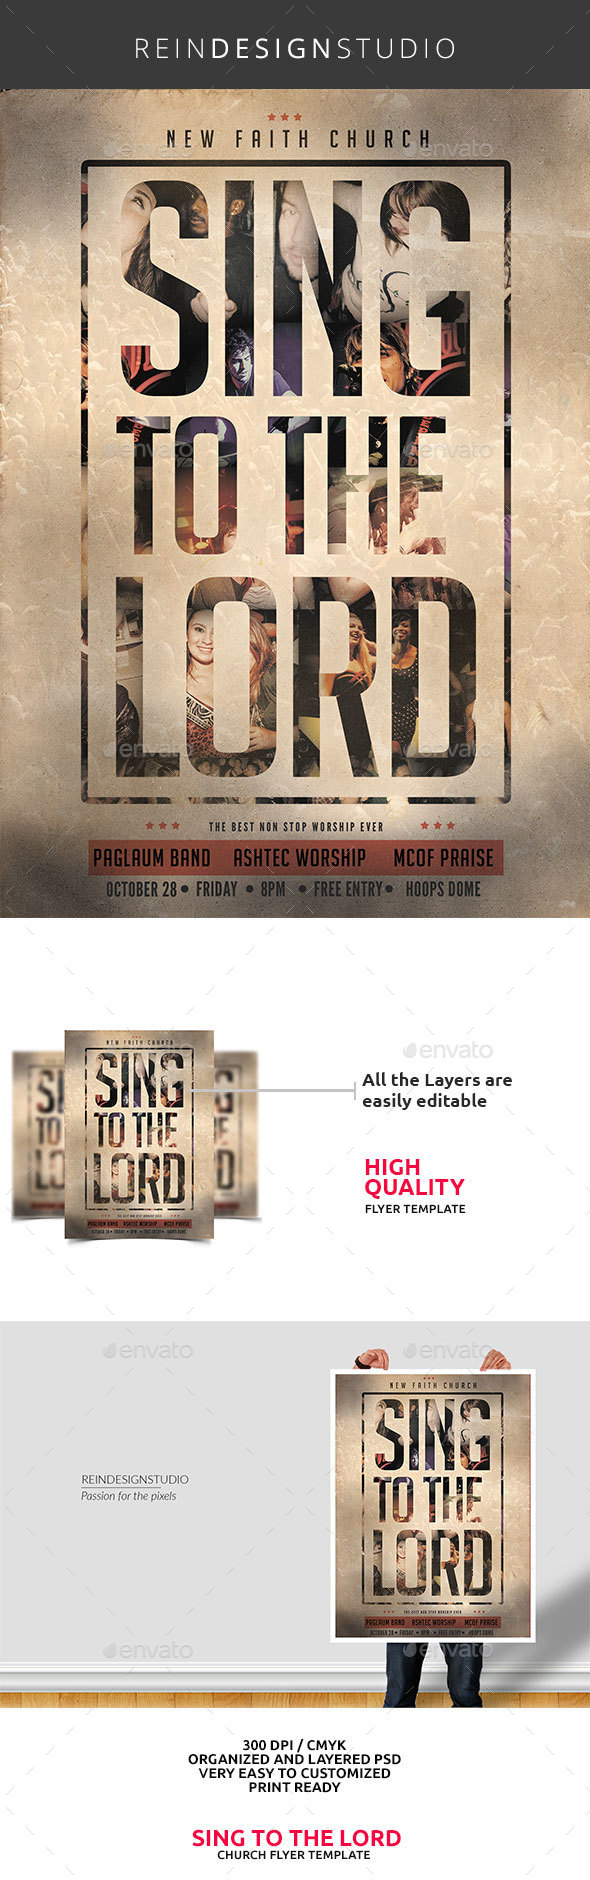 Sing to the Lord Church Flyer - Church Flyers